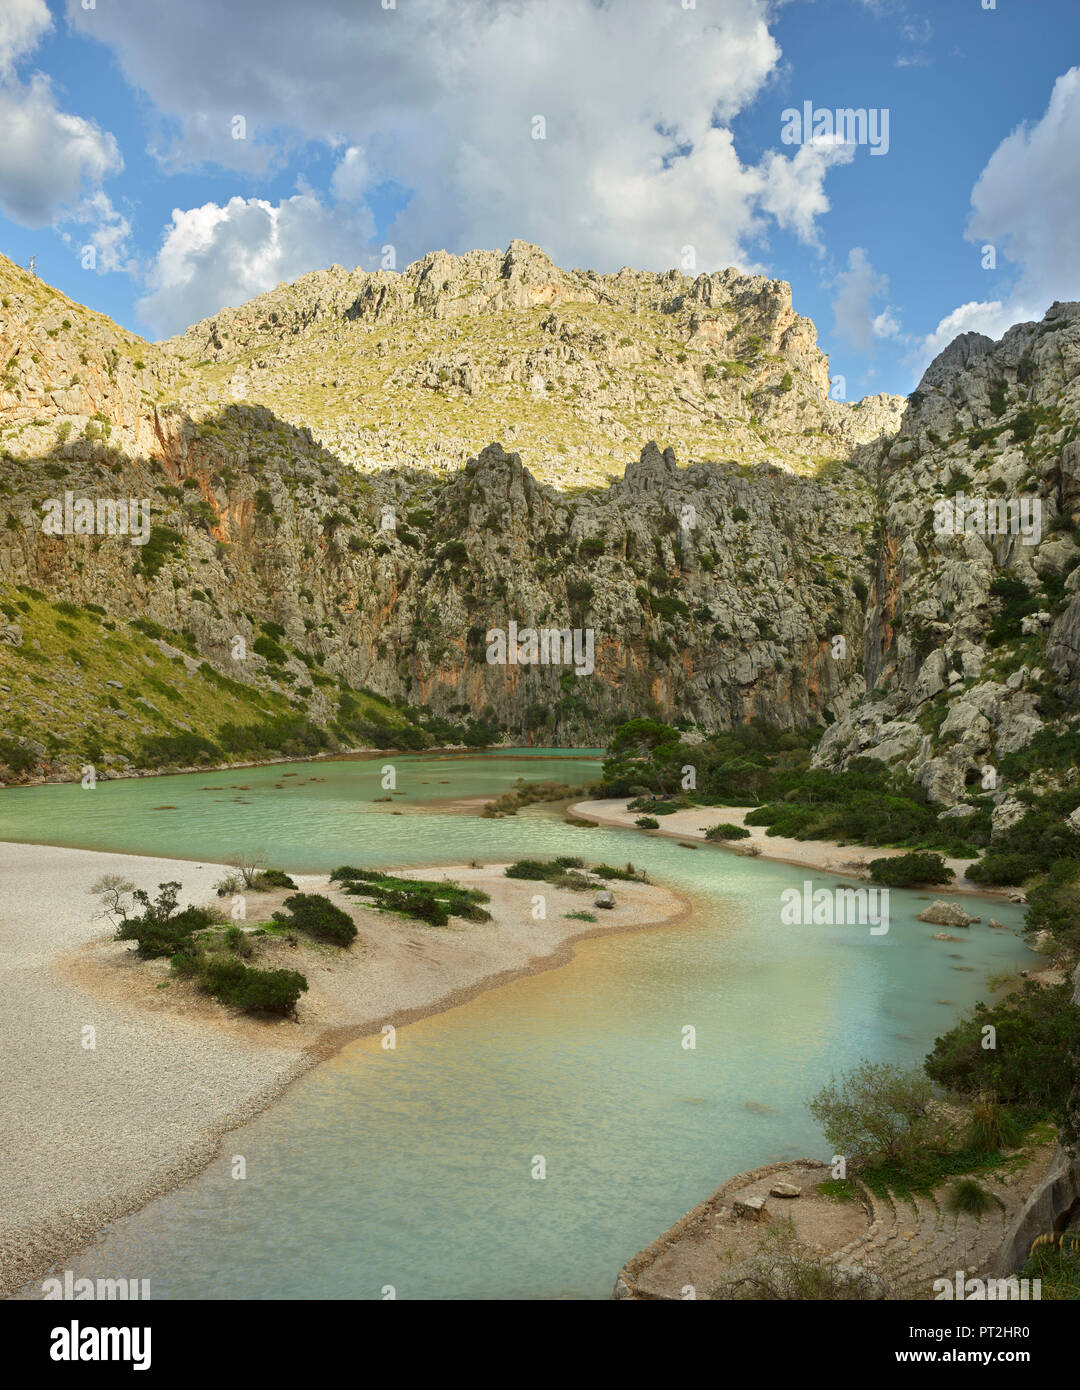 Torrent de Pareis, Sa Calobra, Tramuntana, Mallorca, Balearic Islands, Spain Stock Photo